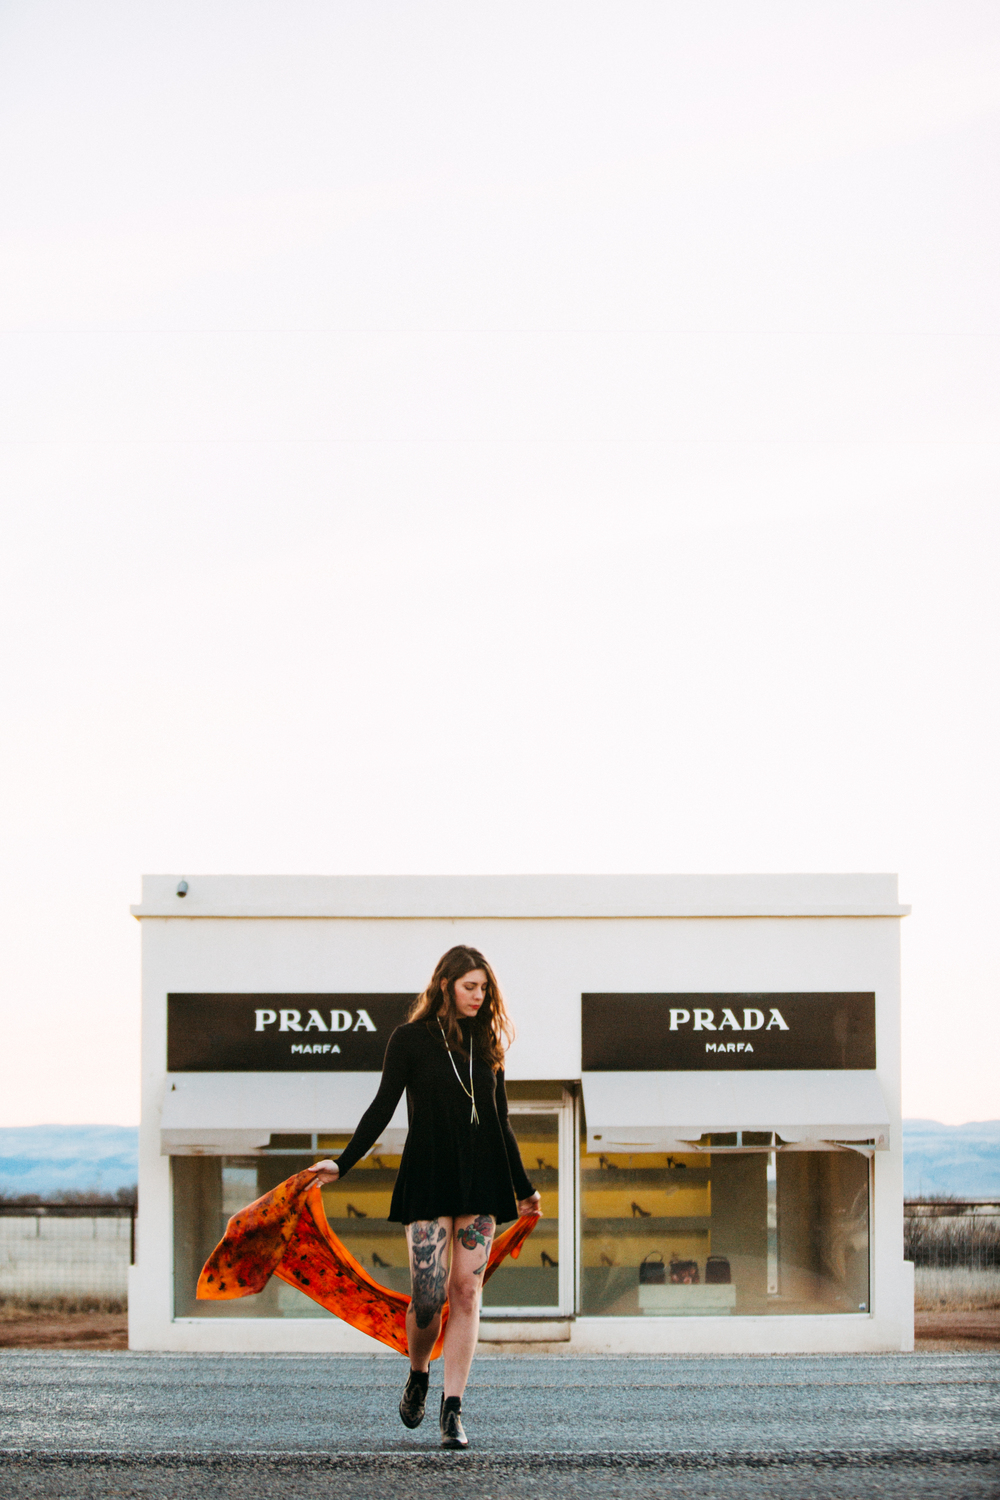 Sunset Prada Marfa Lifestyle Fashion Photography by The Finches